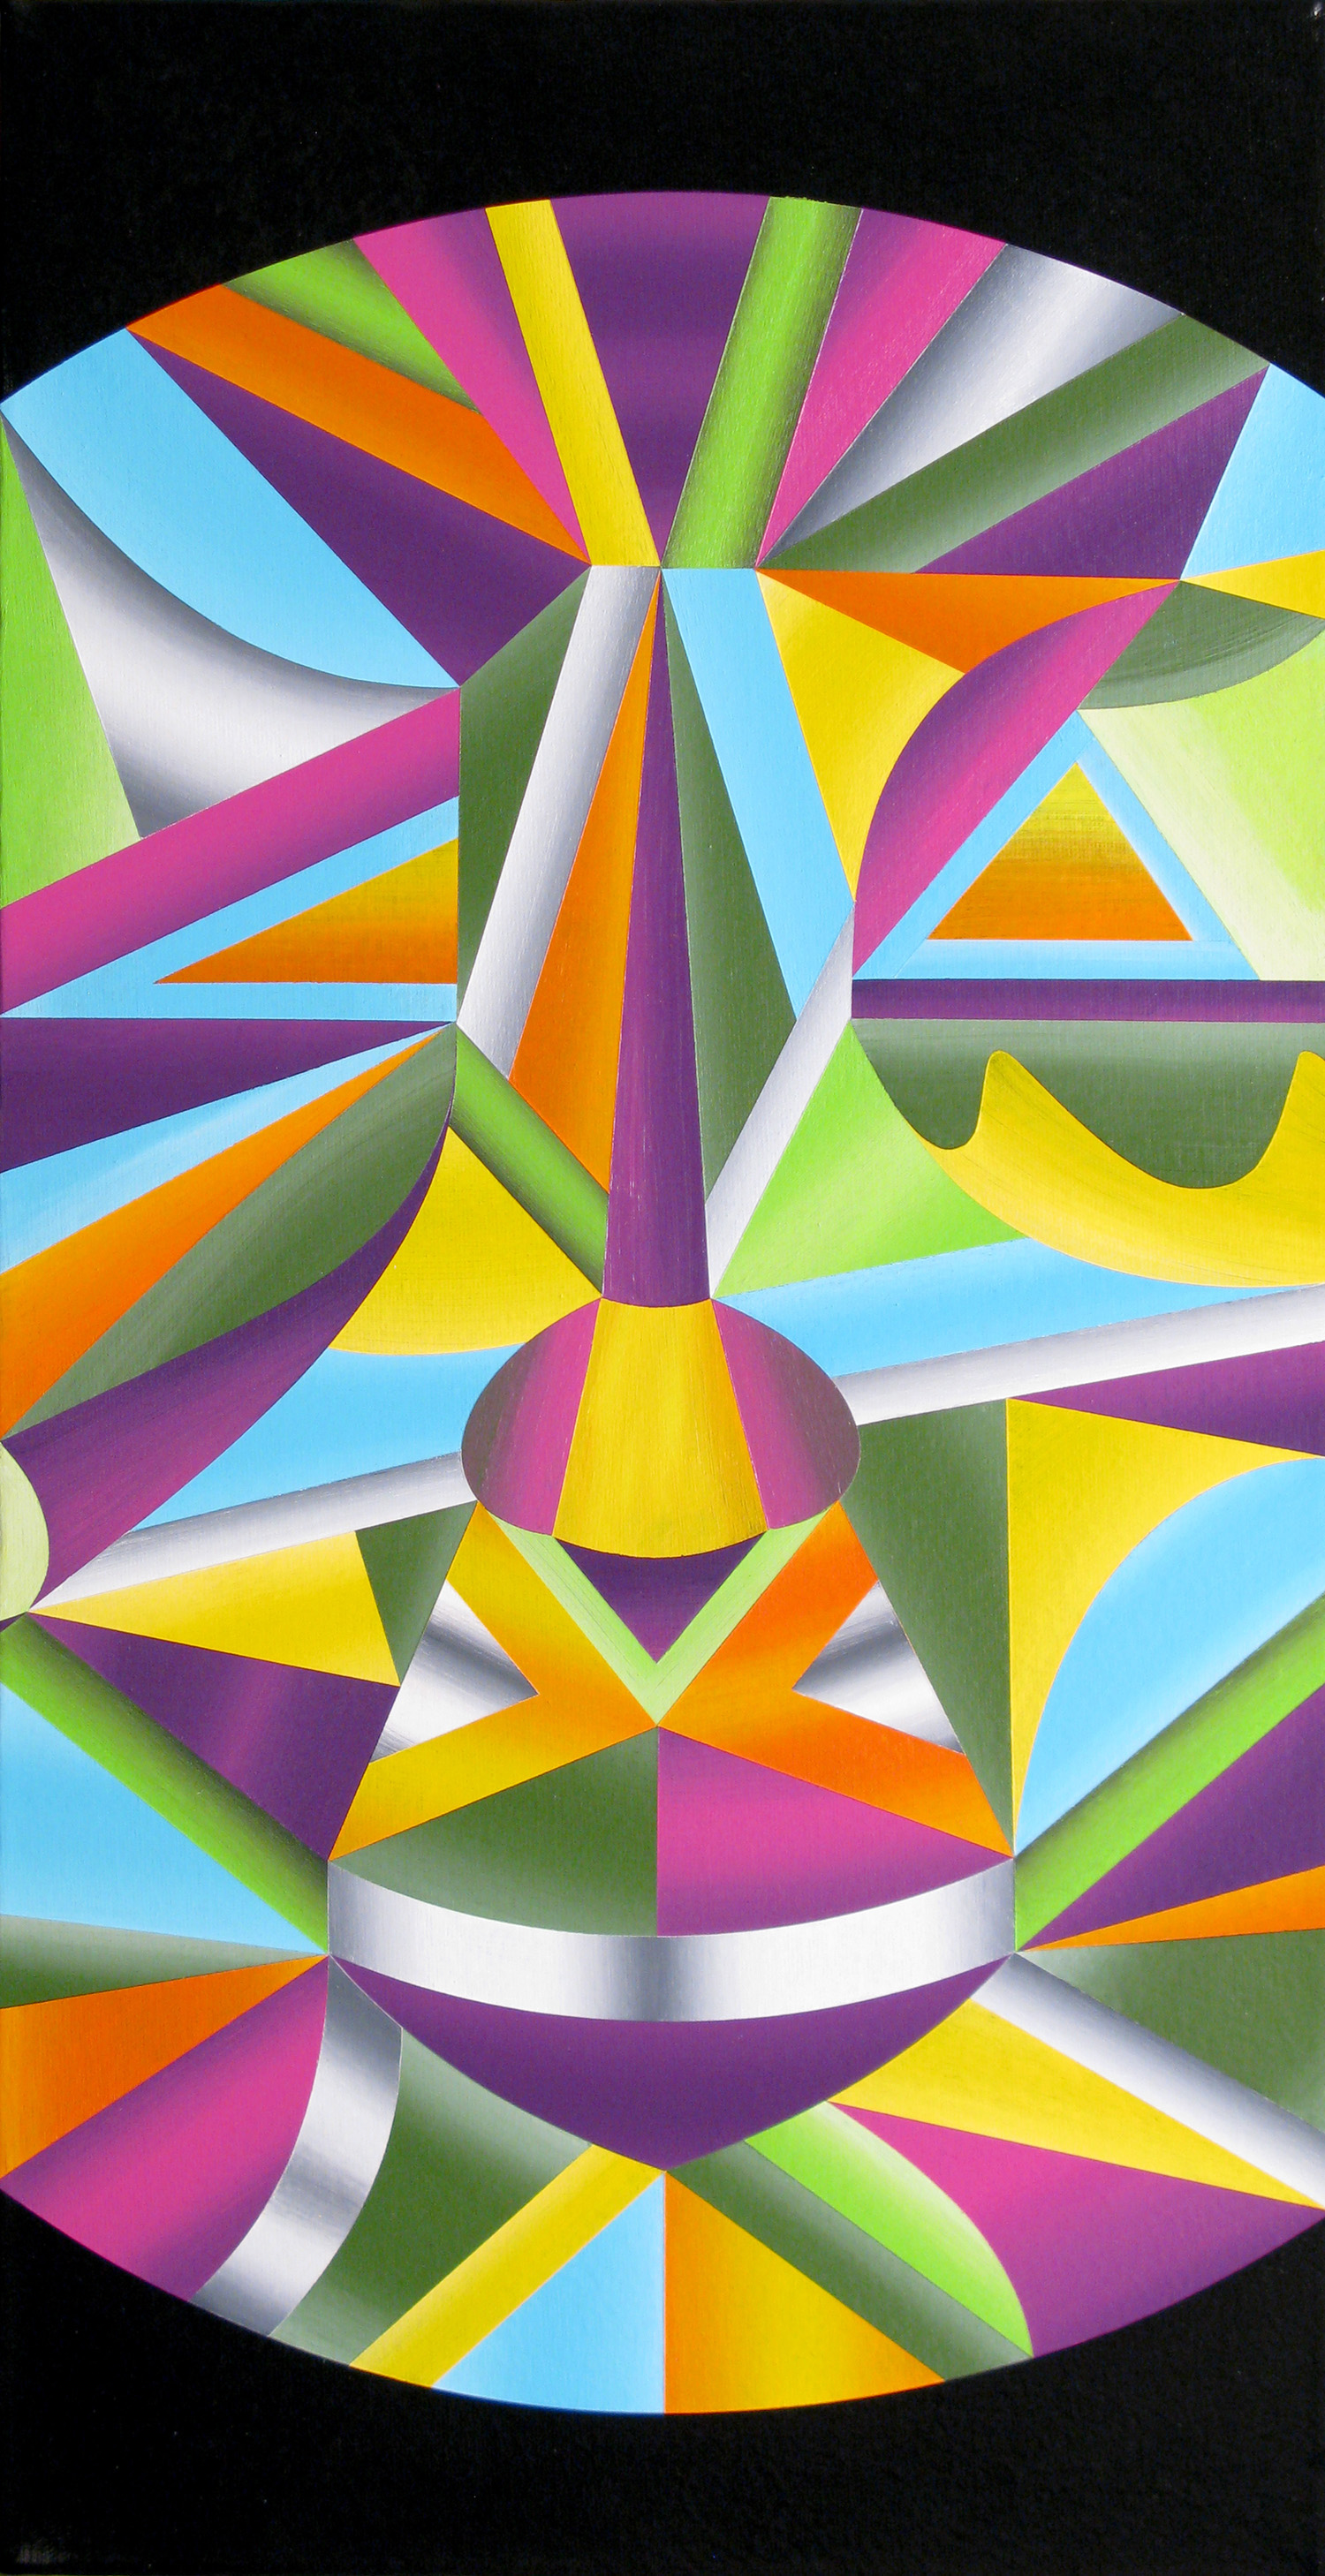 It Aint Easy (Being This Multi-Dimensional), 2010 acrylic on canvas 23.75 x 12.25 inch